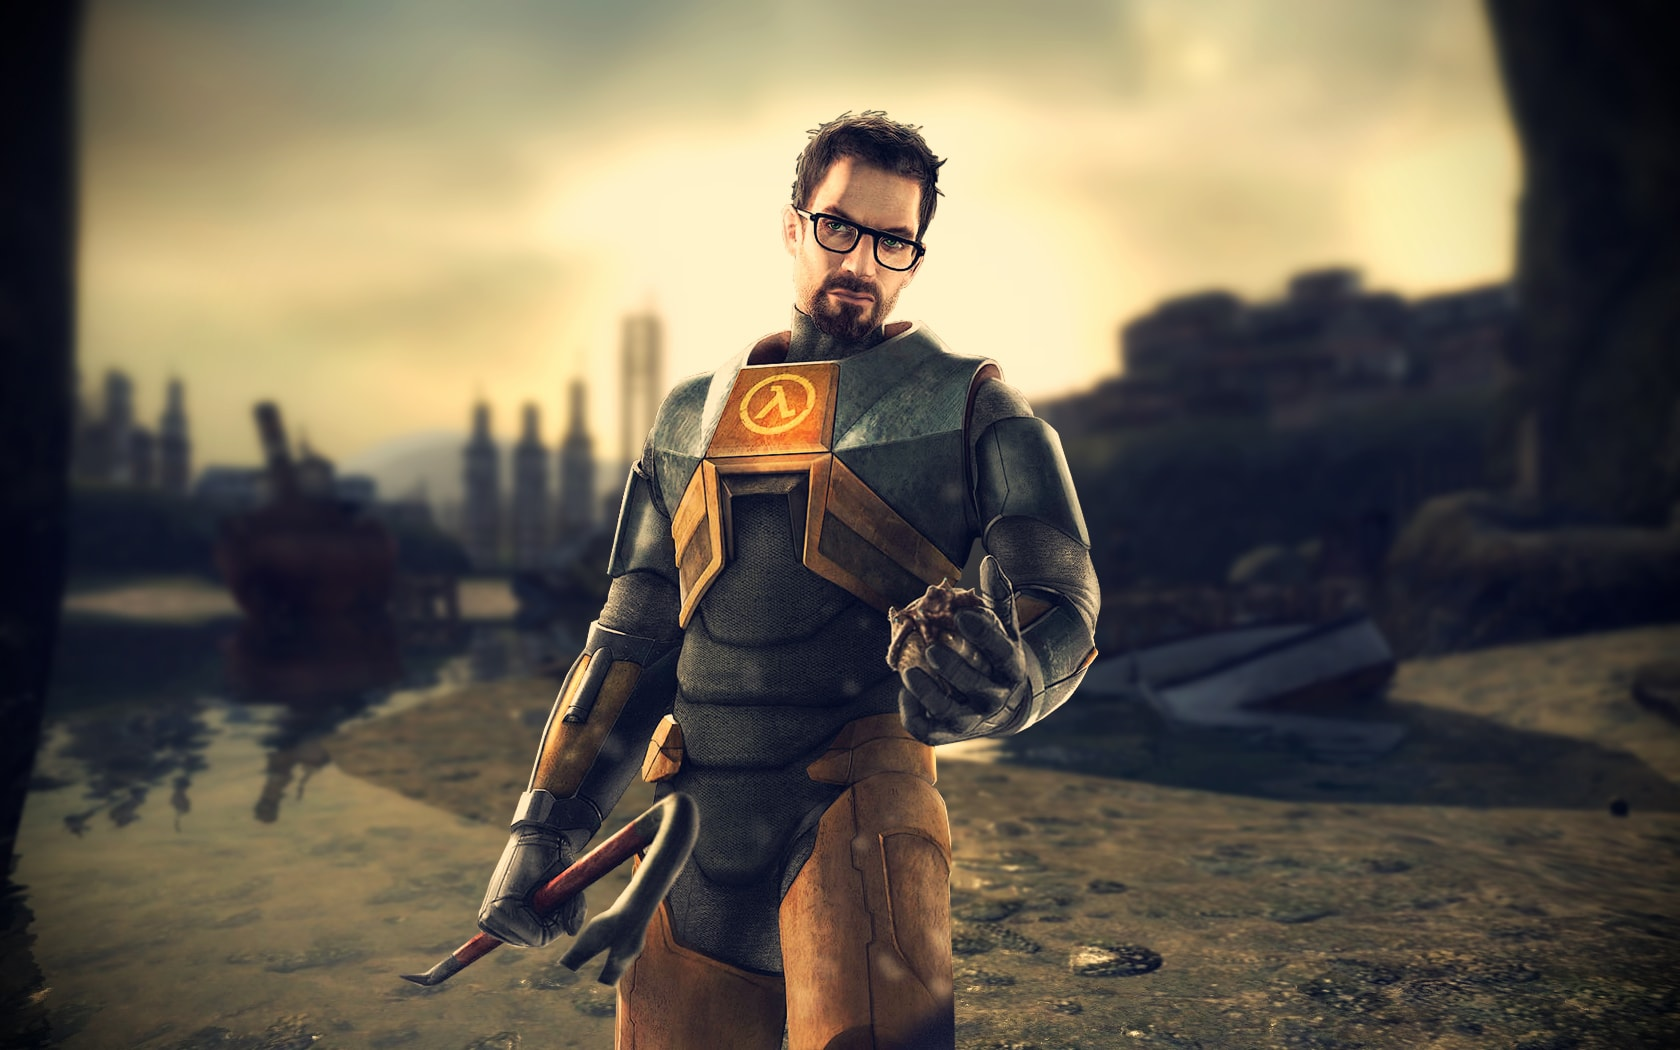 Half-Life 2 widescreen wallpapers